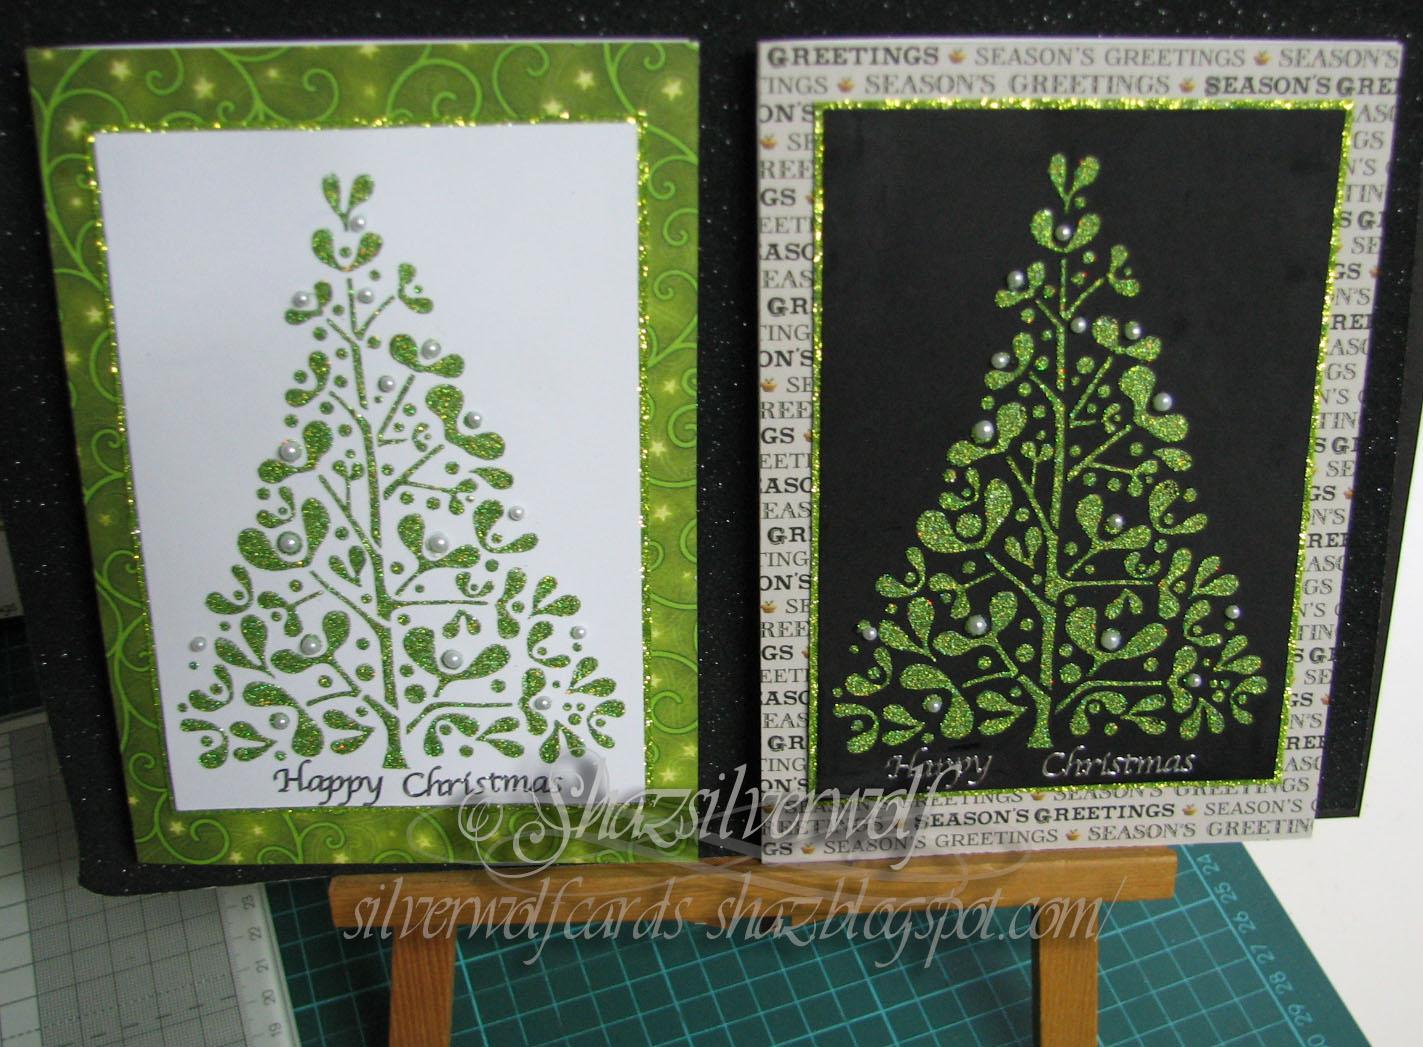 SILVER CHRISTMAS TREES PEEL OFF STICKERS FOR CARDS OR CRAFTS